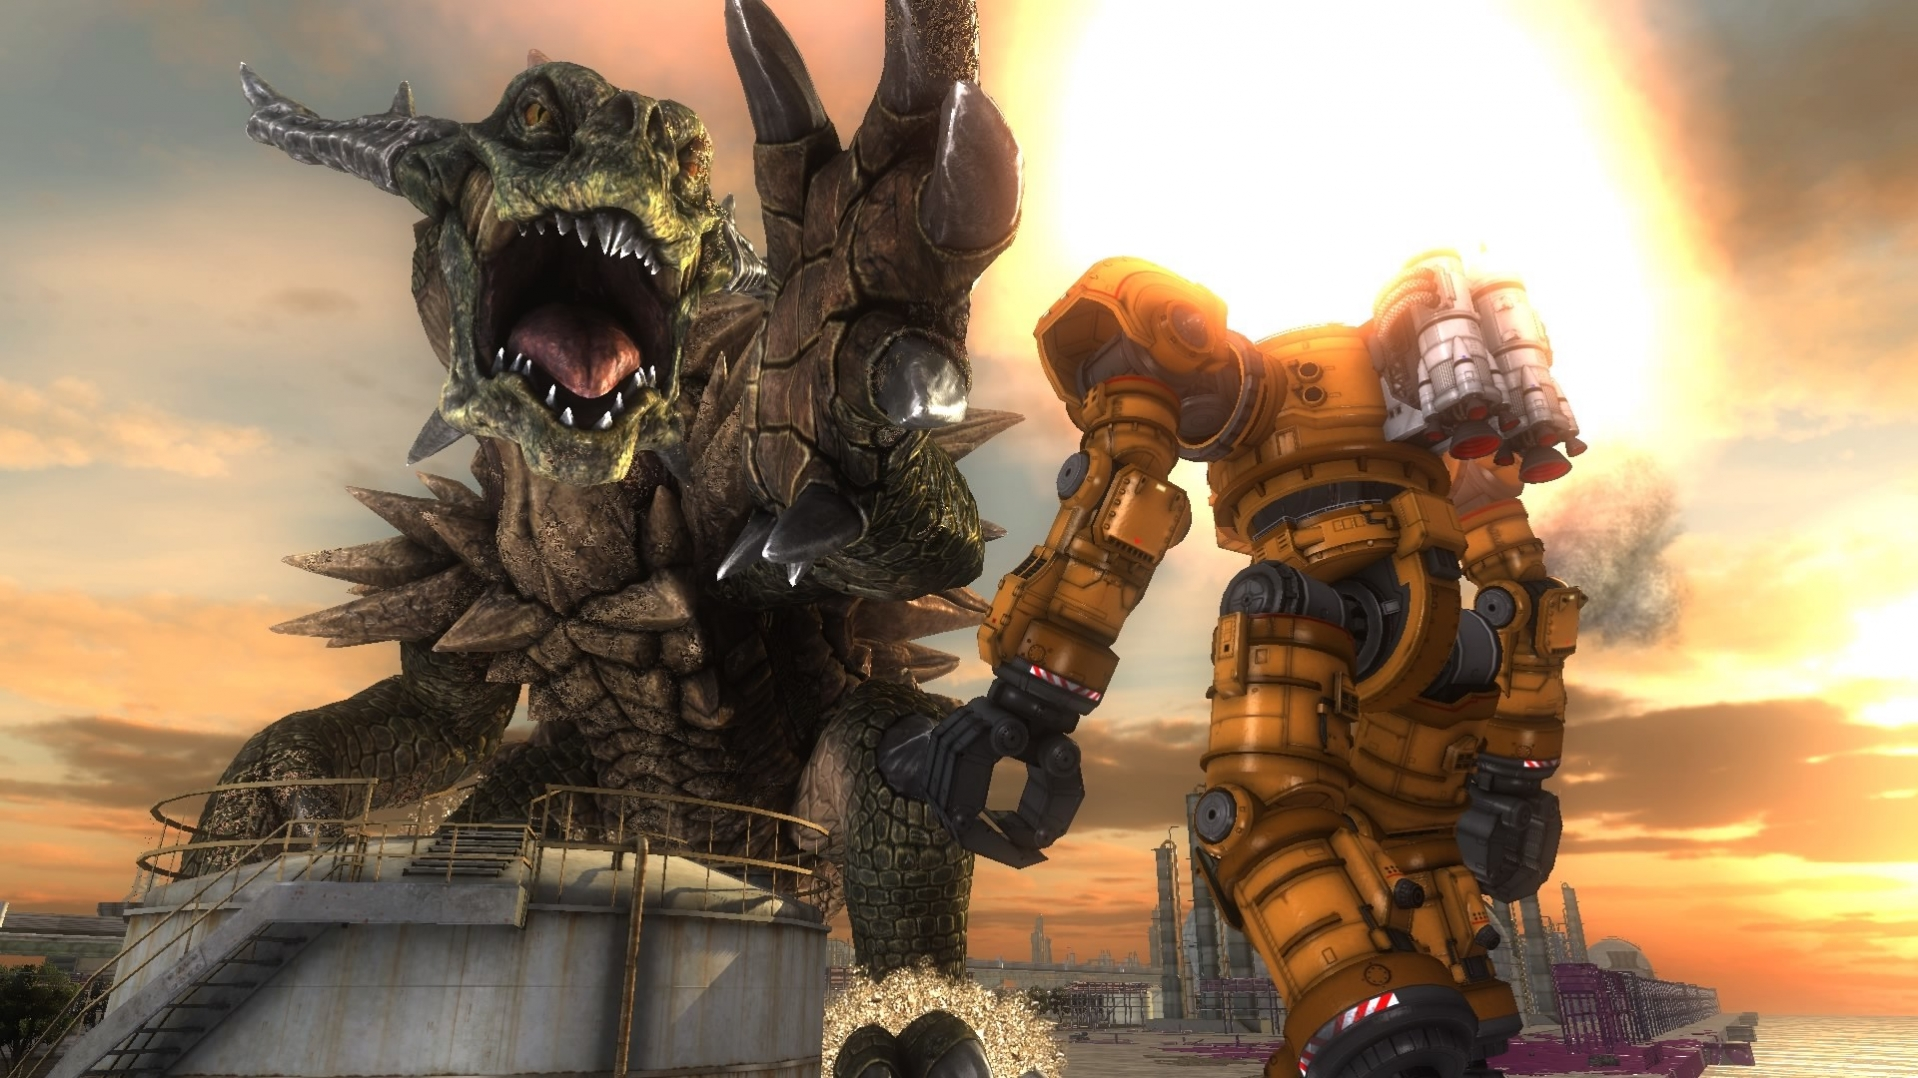 Earth Defense Force 5 will arrive on PC this month - PC hardware